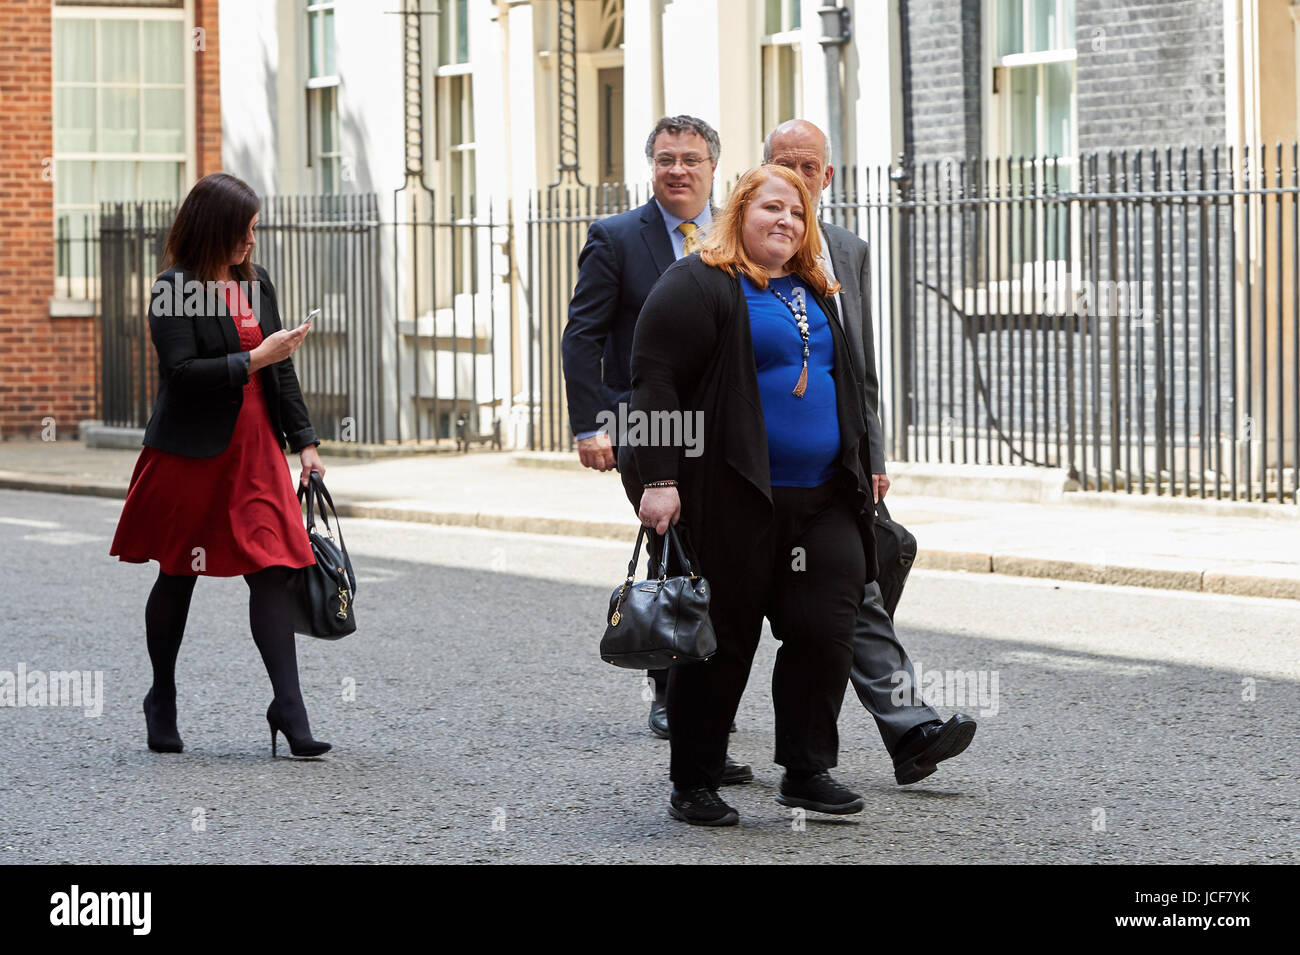 London, UK. 15th June, 2017. Members of the Alliance Party of Northern Ireland seen in Downing Street after meeting - Stock Image